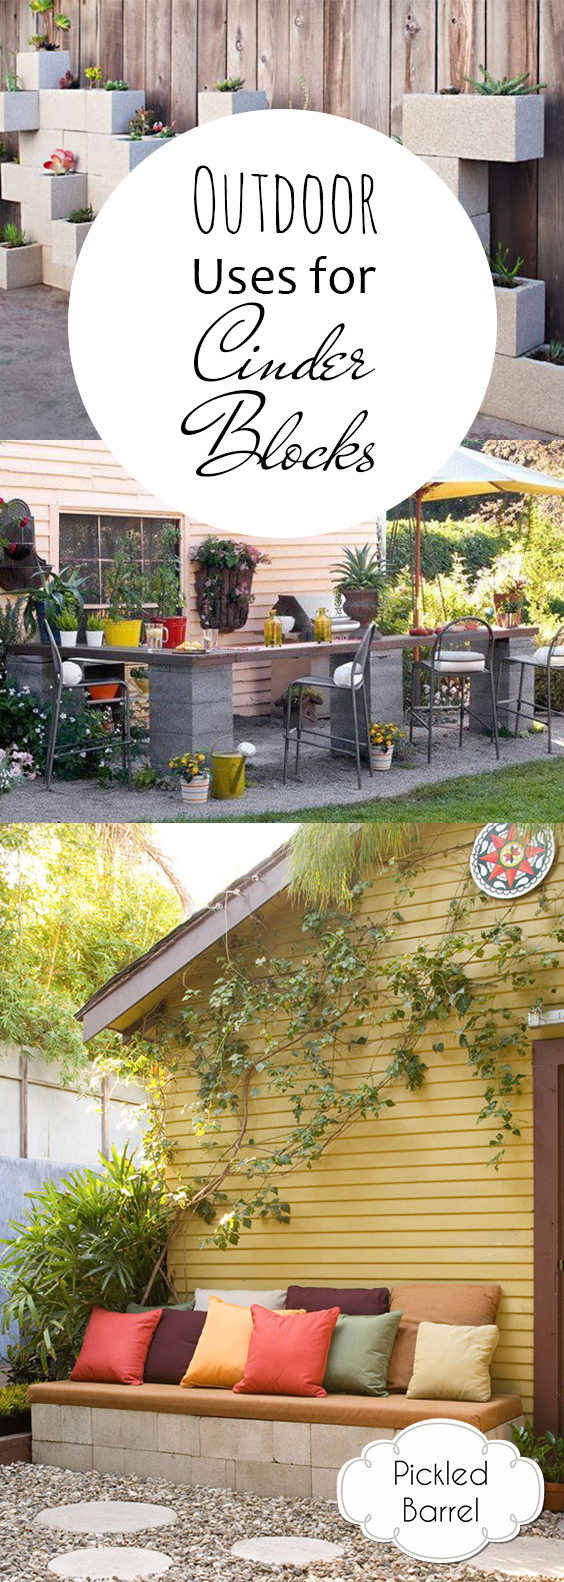 Outdoor Uses for Cinder Blocks  Cinder Blocks, How to Use Cinderblocks, Things to Do With Cinder Blocks, Crafting With Cinder Blocks, Outdoor Uses for Cinderblocks, Outdoor DIY Projects, Popular Pin, Outdoor Living